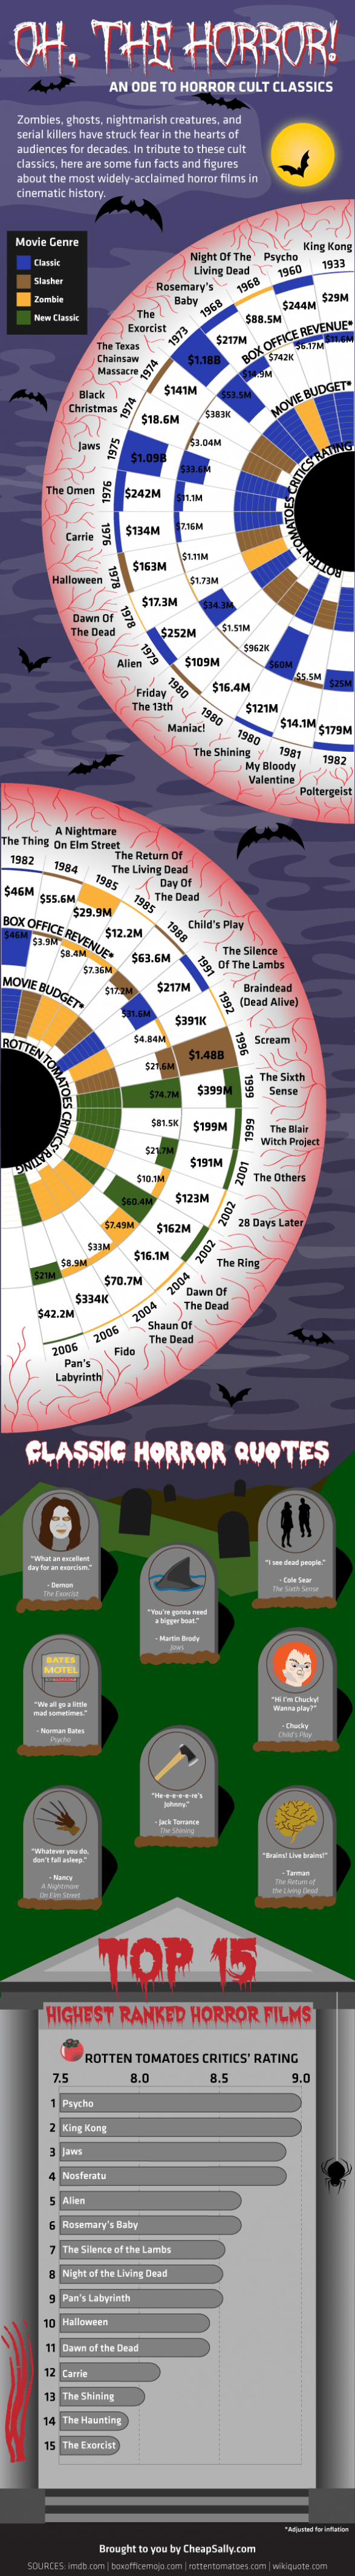 Oh, The Horror! An Ode to Horror Cult Classics